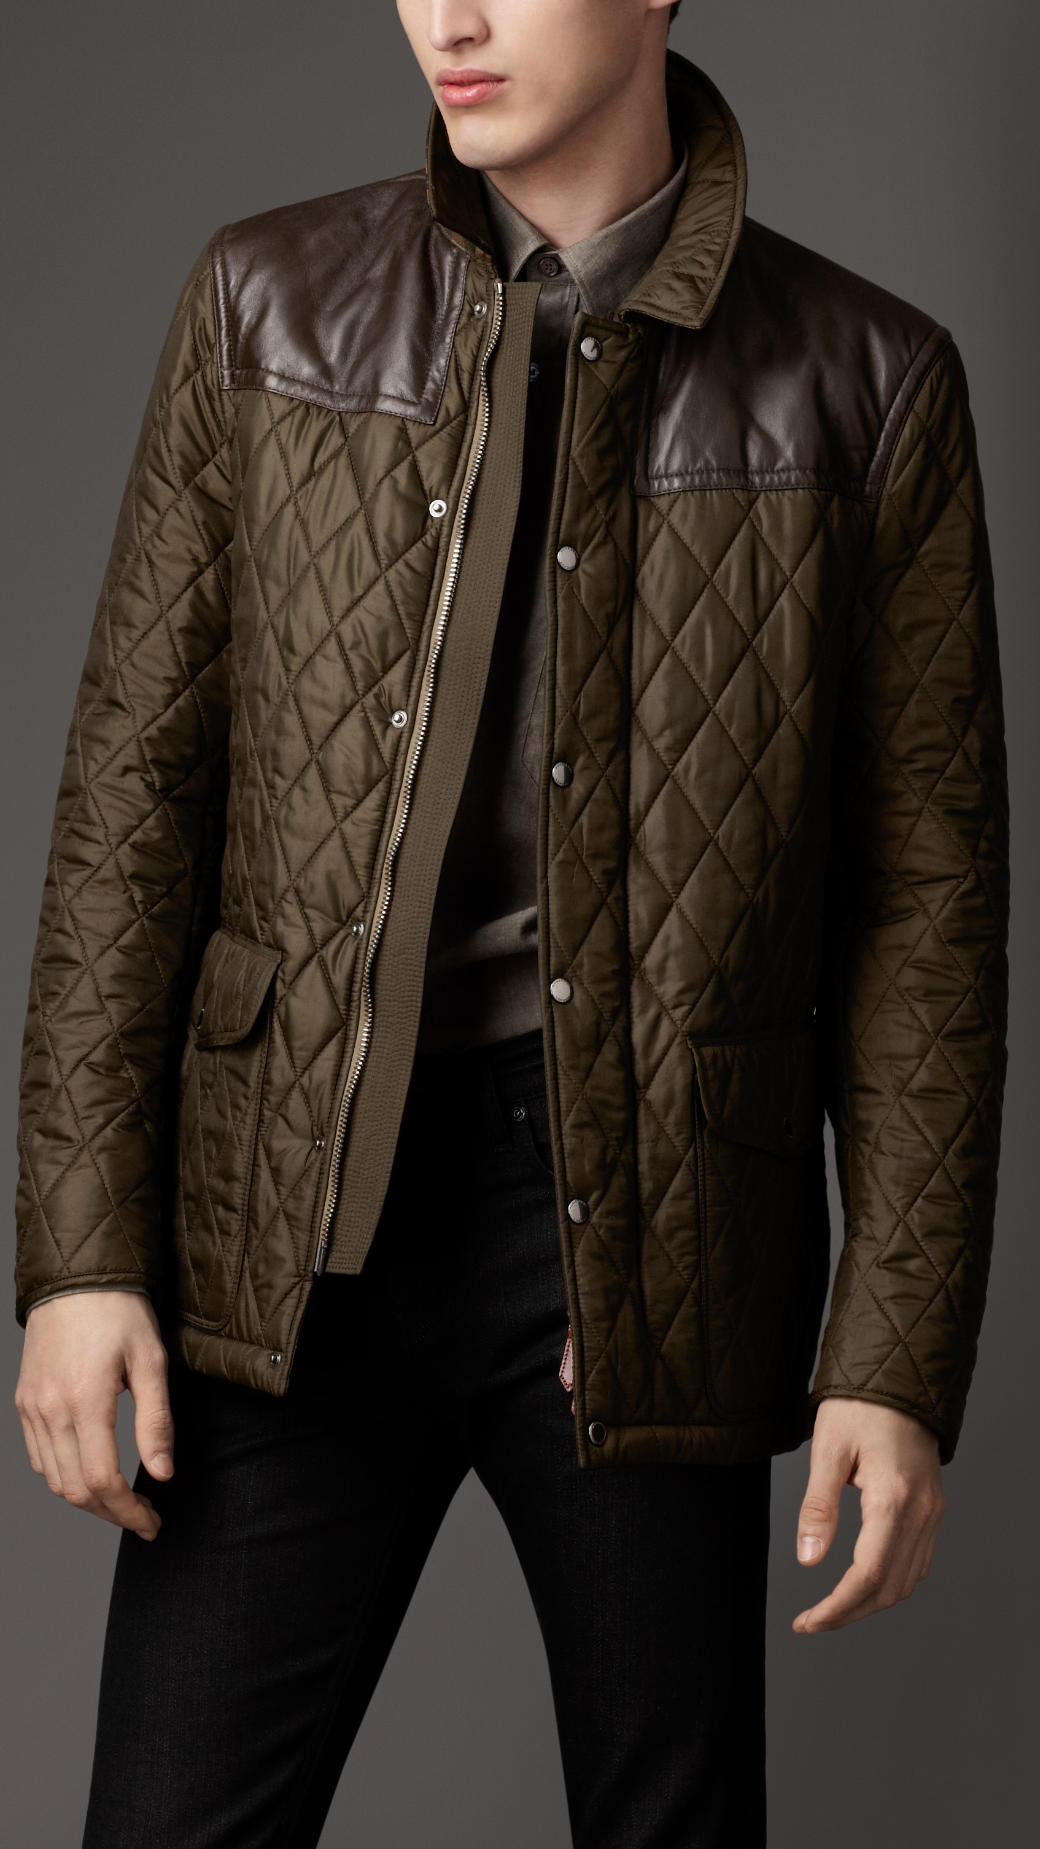 Lyst - Burberry Leather Panel Quilted Jacket in Green for Men